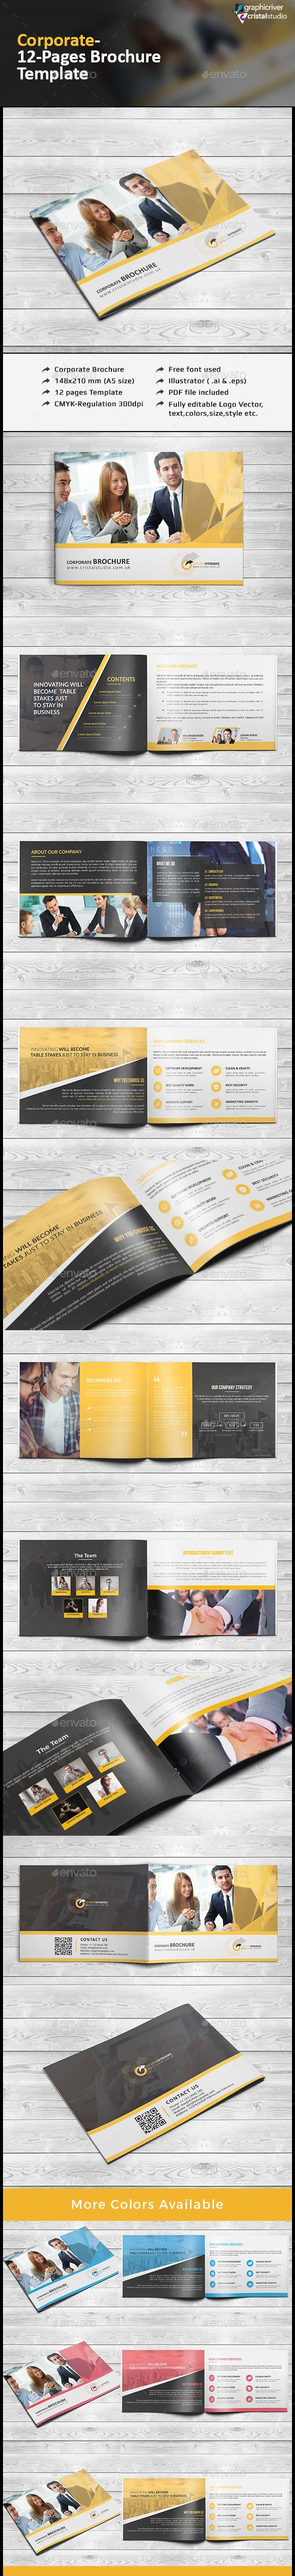 55 best Multi Pages Brochure Template images on Pinterest | Brochure ...